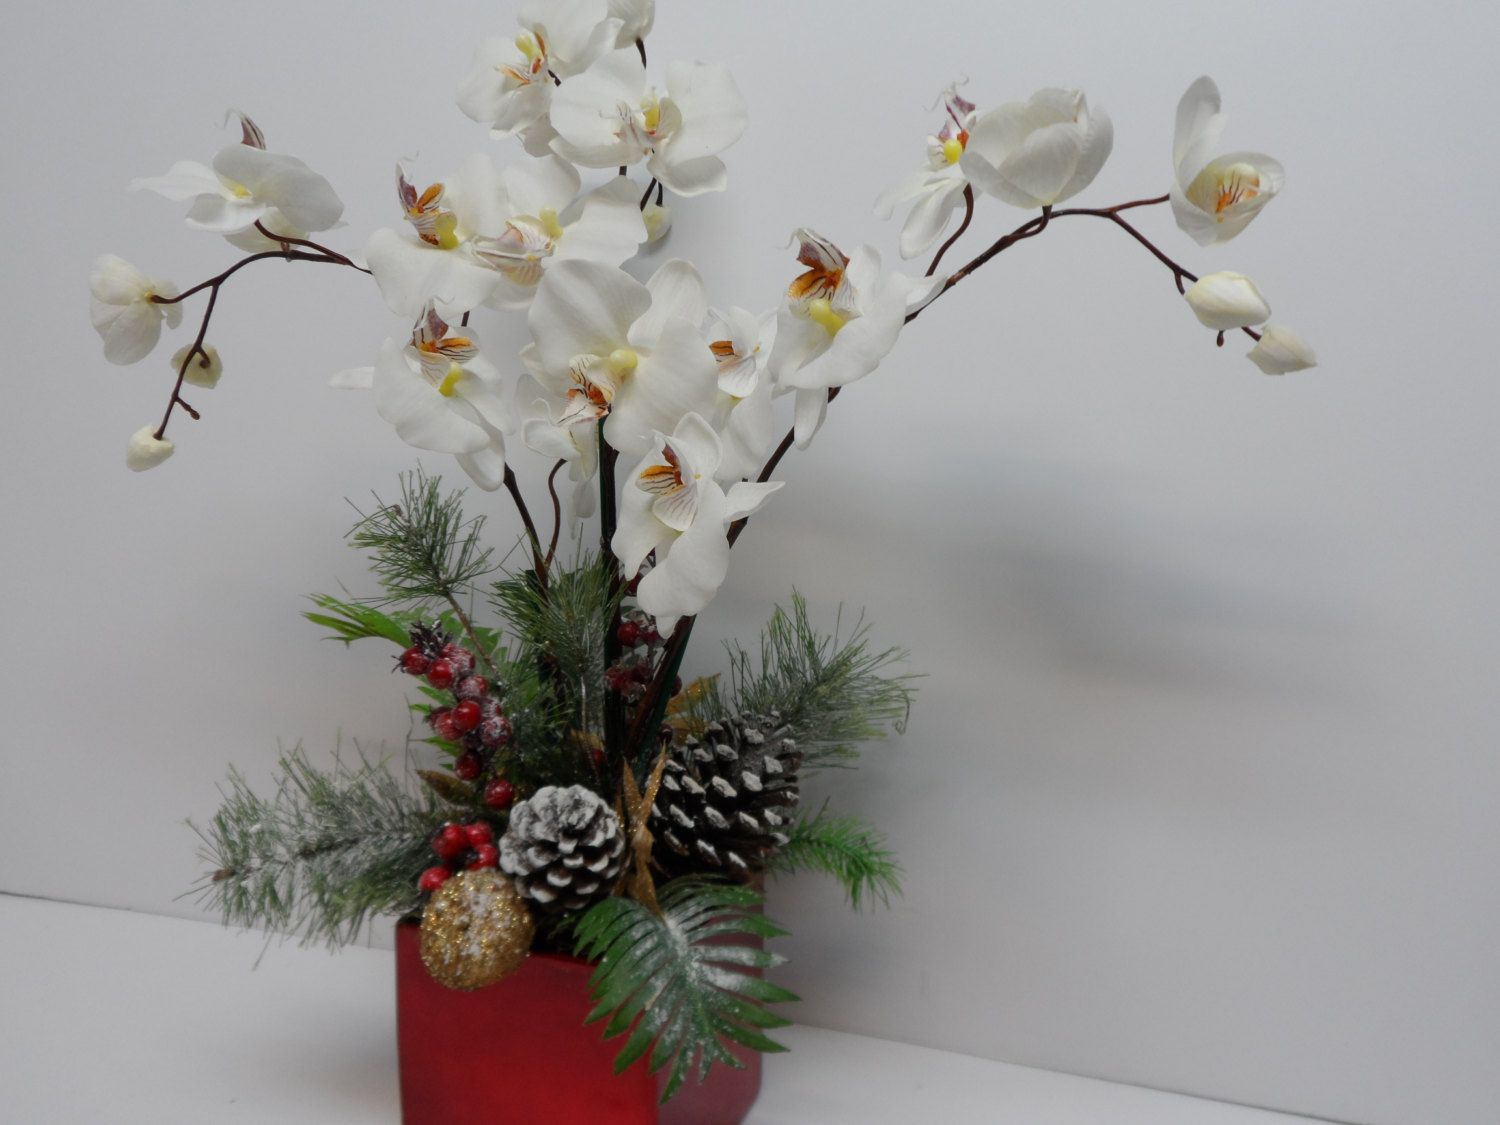 Christmas Orchid Arrangement, Orchid Arrangement, Elegant White Orchid, Holiday Orchid Arrangement, Elegant Table Arrangement, Pines cones by BeautifulHomeAccents on Etsy